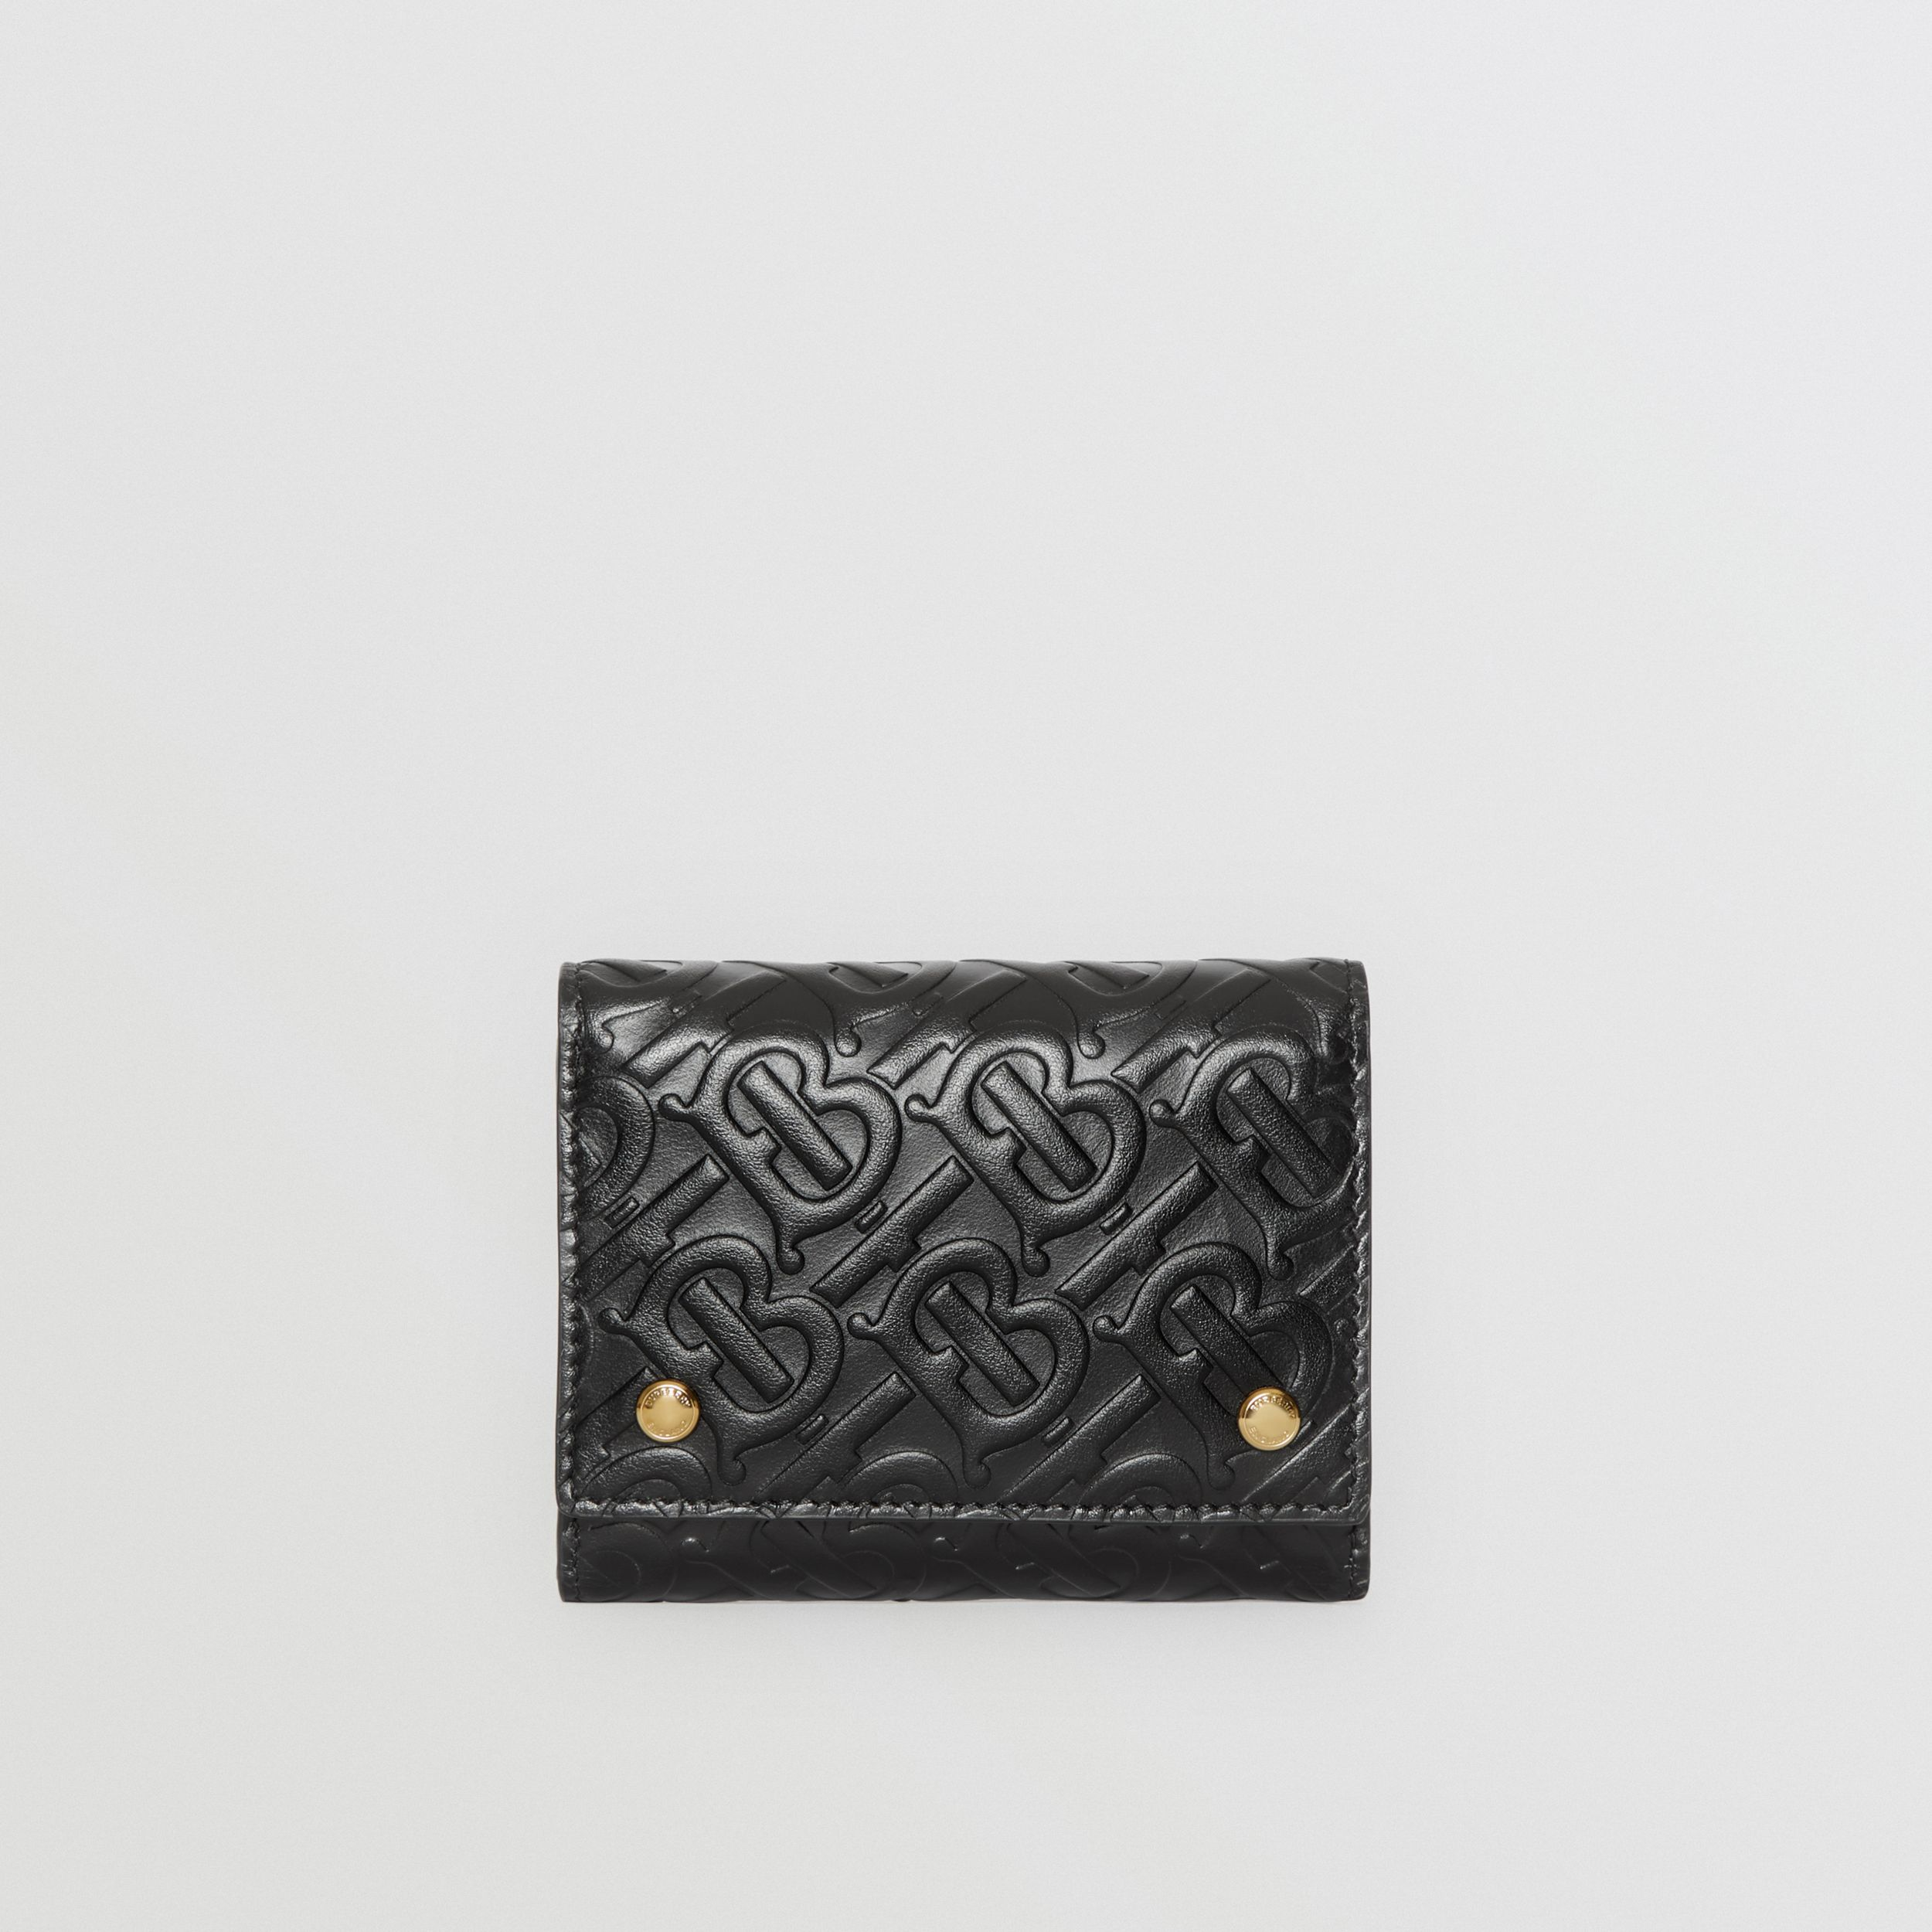 Small Monogram Leather Folding Wallet in Black - Men | Burberry - 1